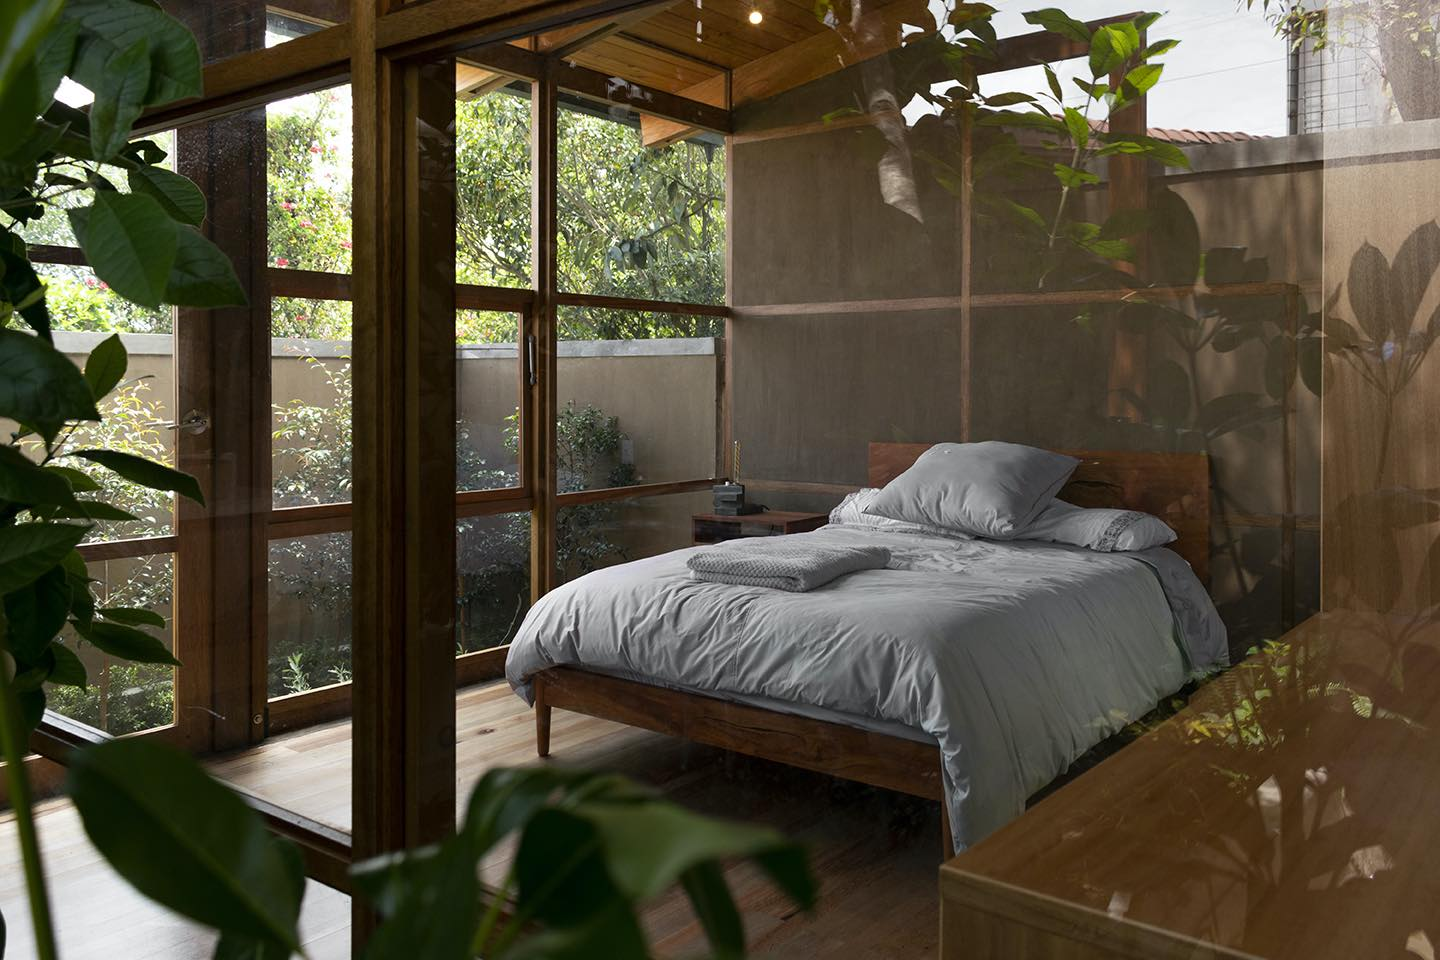 master bedroom with glass window letting the natural light enter the room